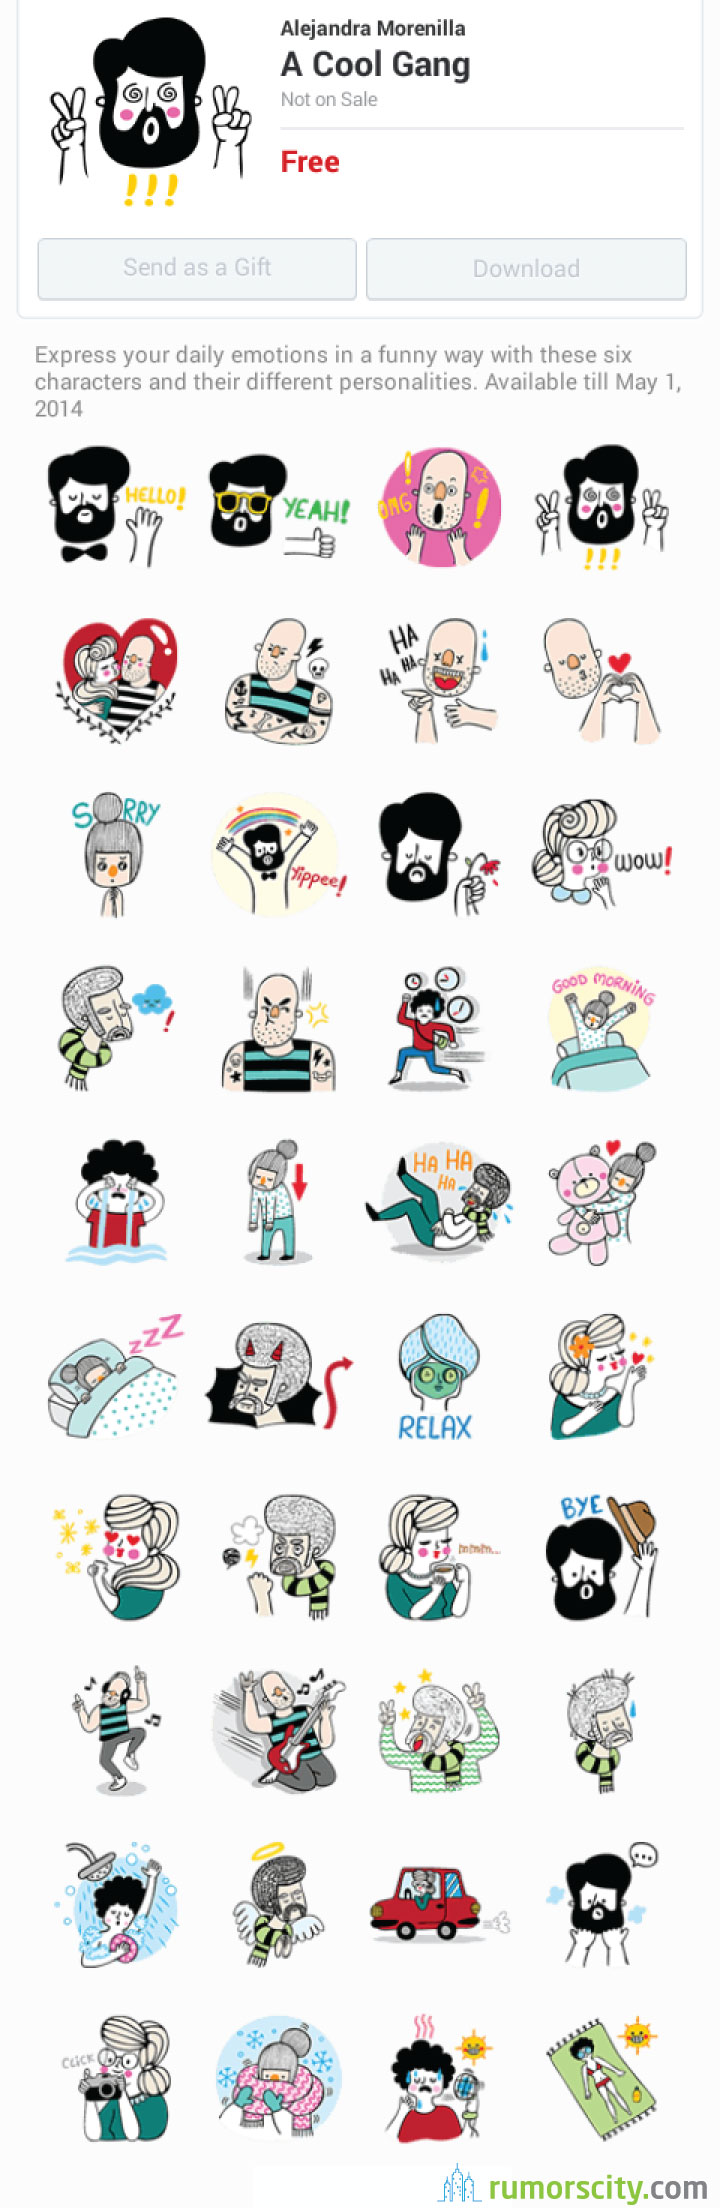 A-Cool-Gang-Line-sticker-in-USA-01